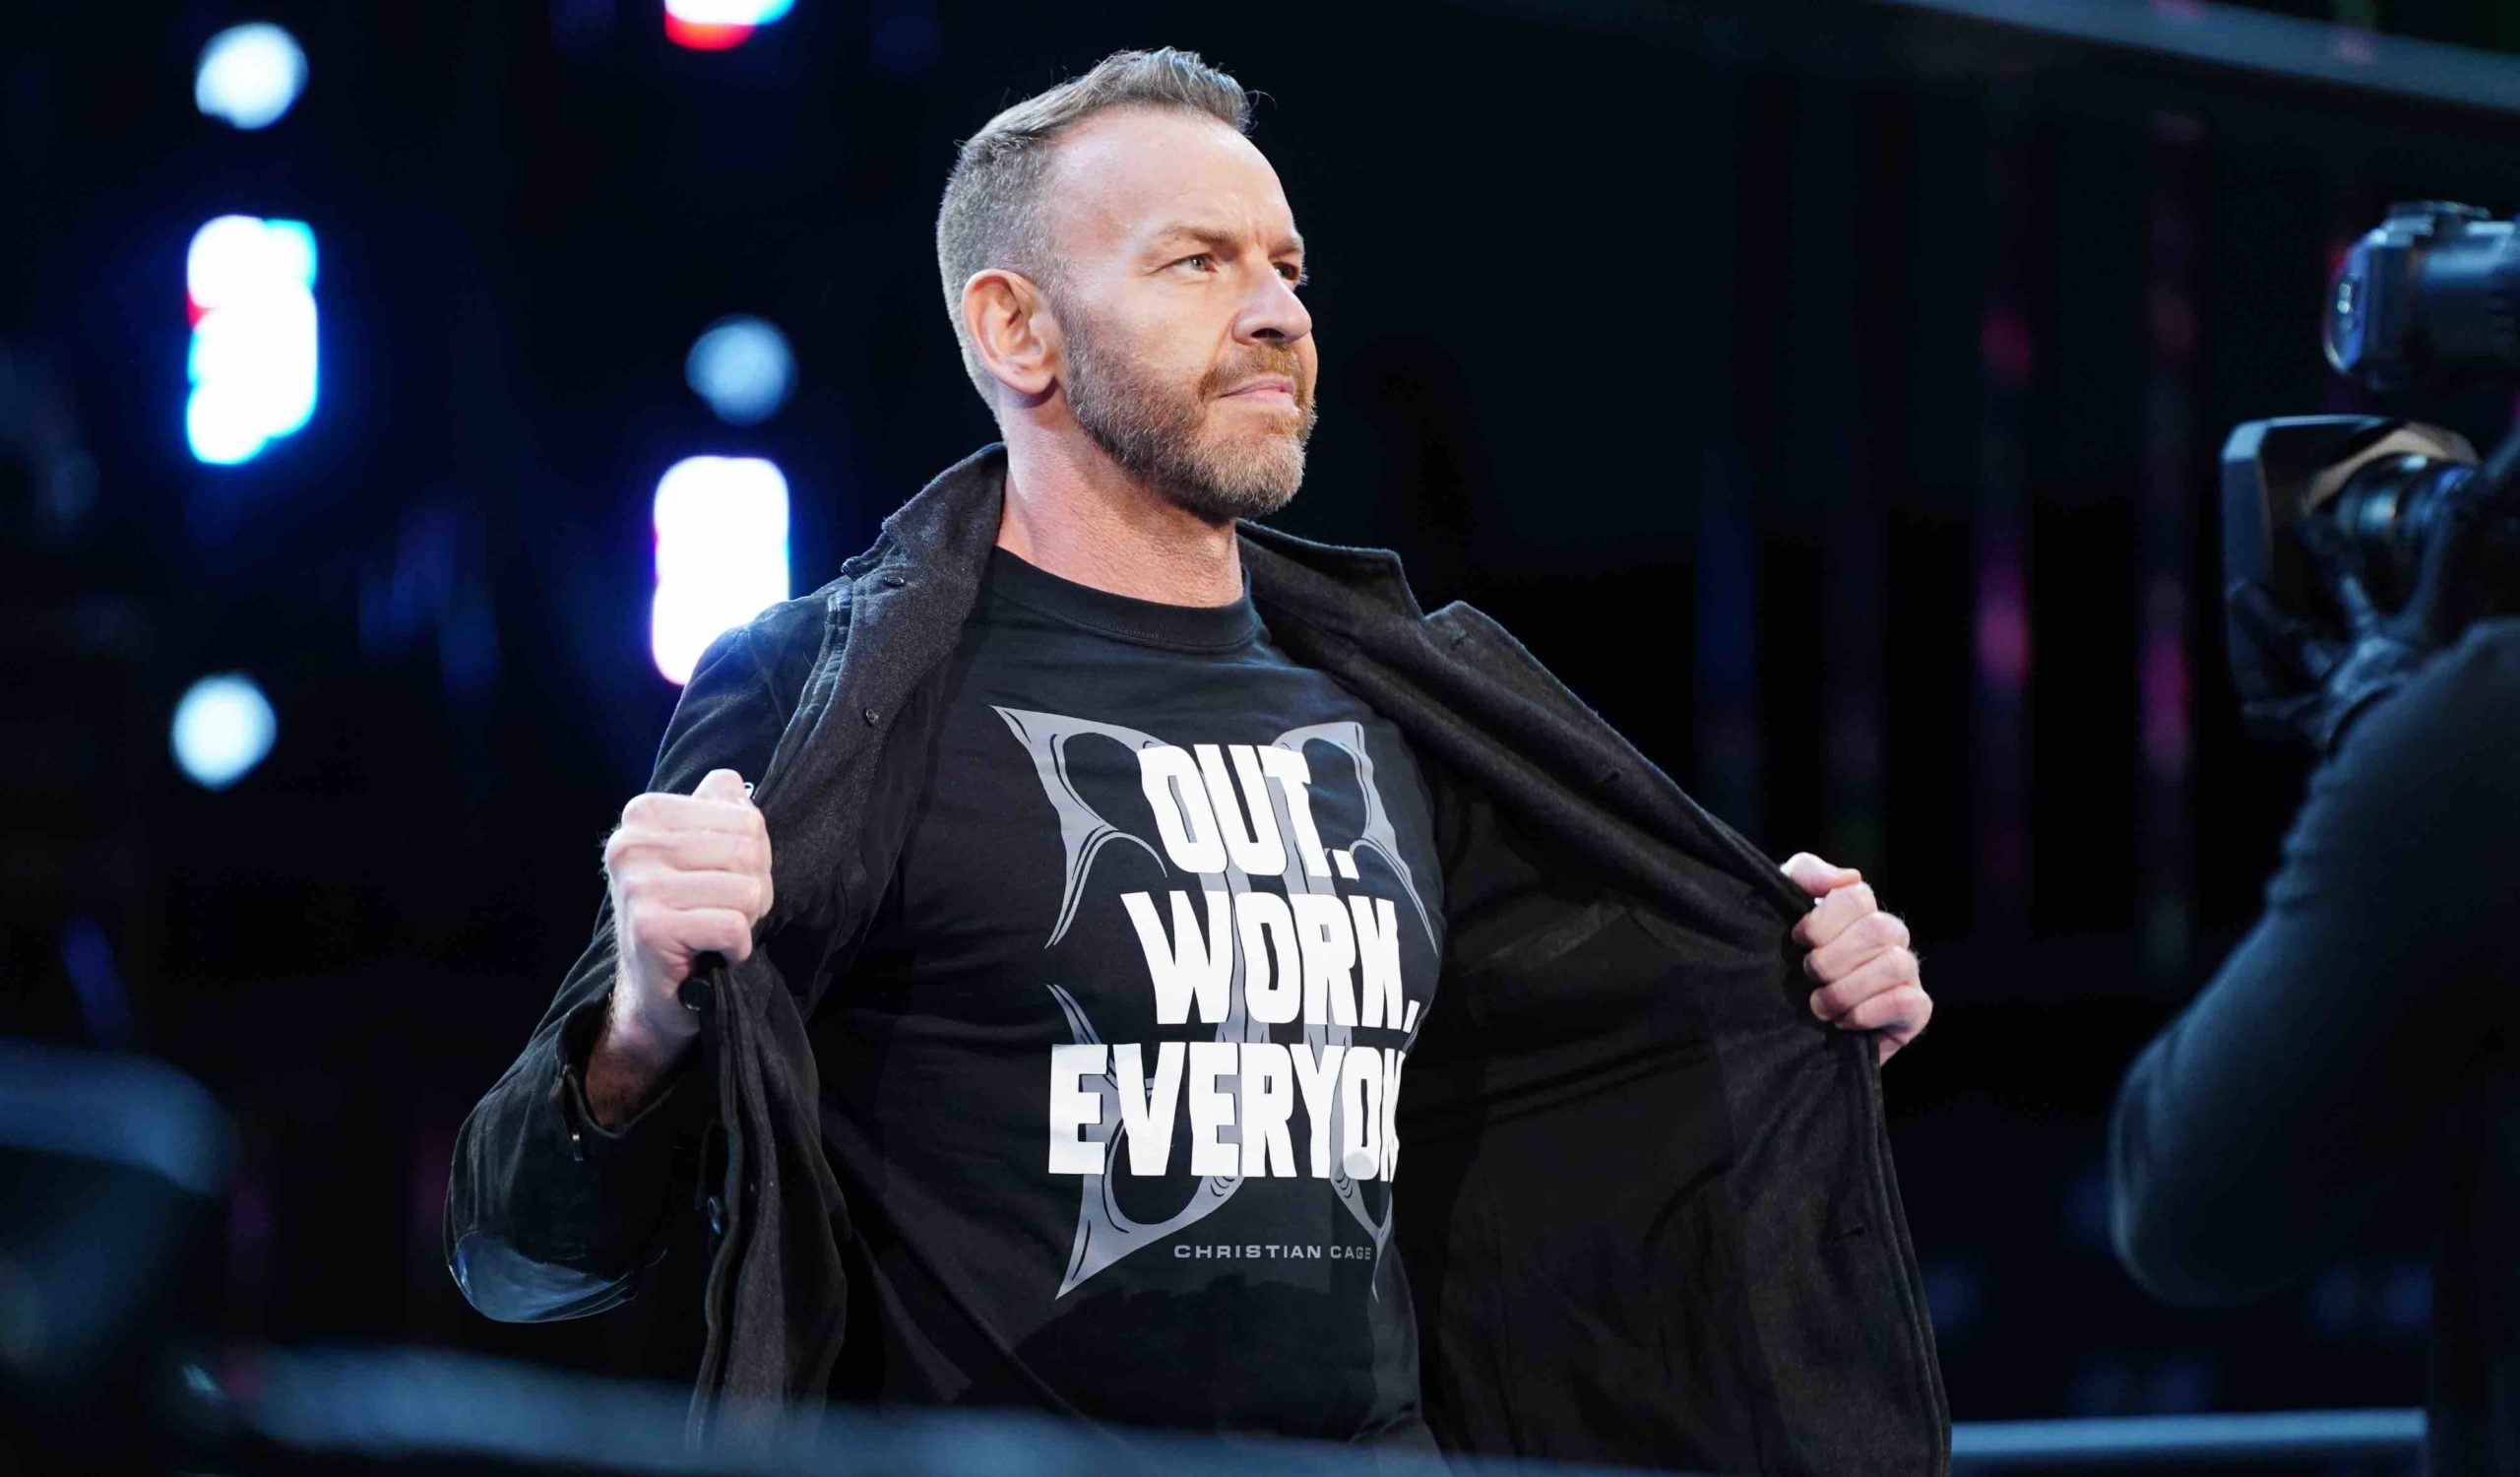 How Busy Christian Cage